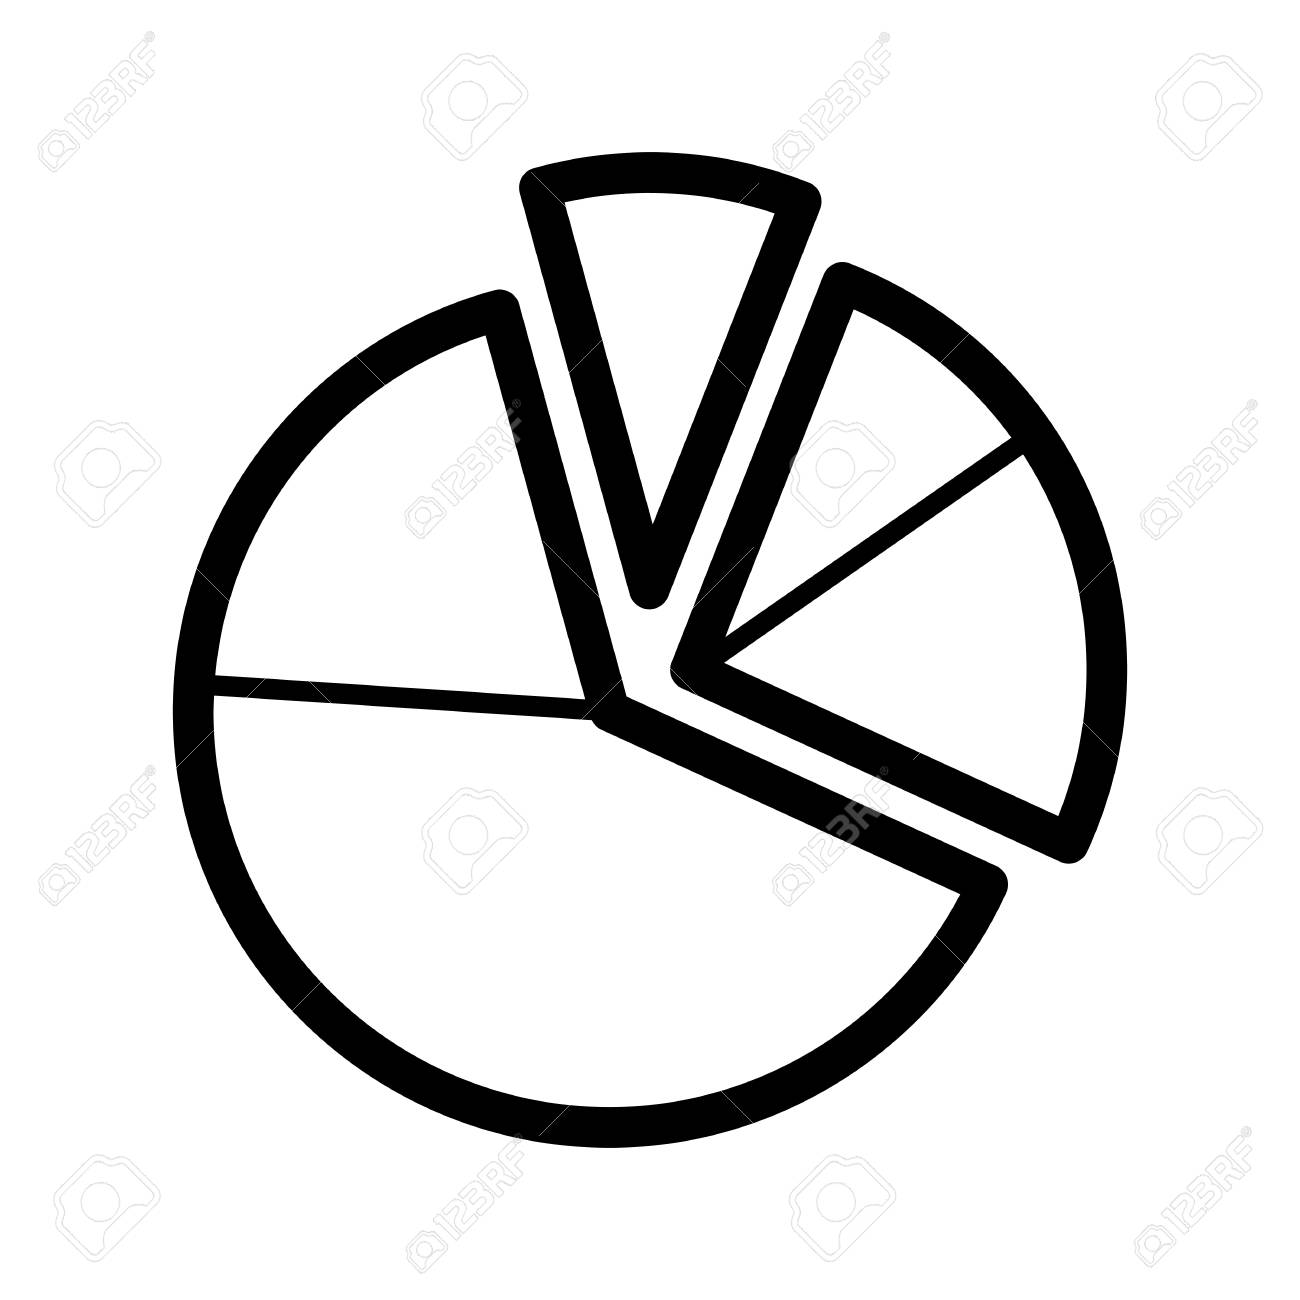 Pie chart diagram vector icon. Black and white graphic illustration. Outline linear analytical icon. - 78534462